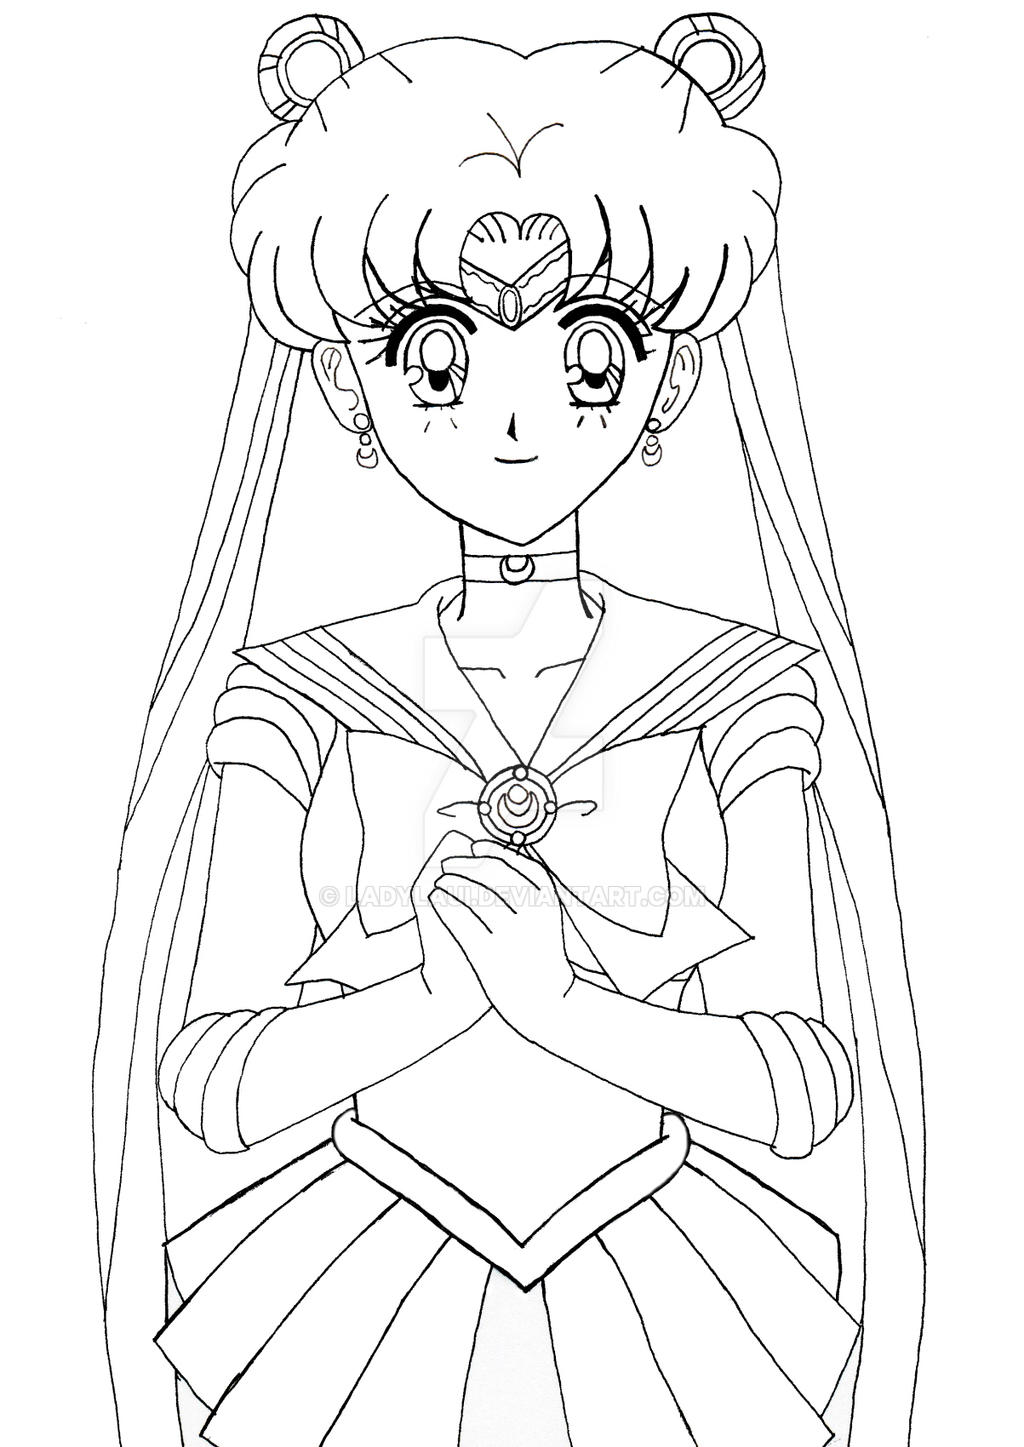 Line Drawing Moon : Lineart sailor moon first form by ladylaui on deviantart